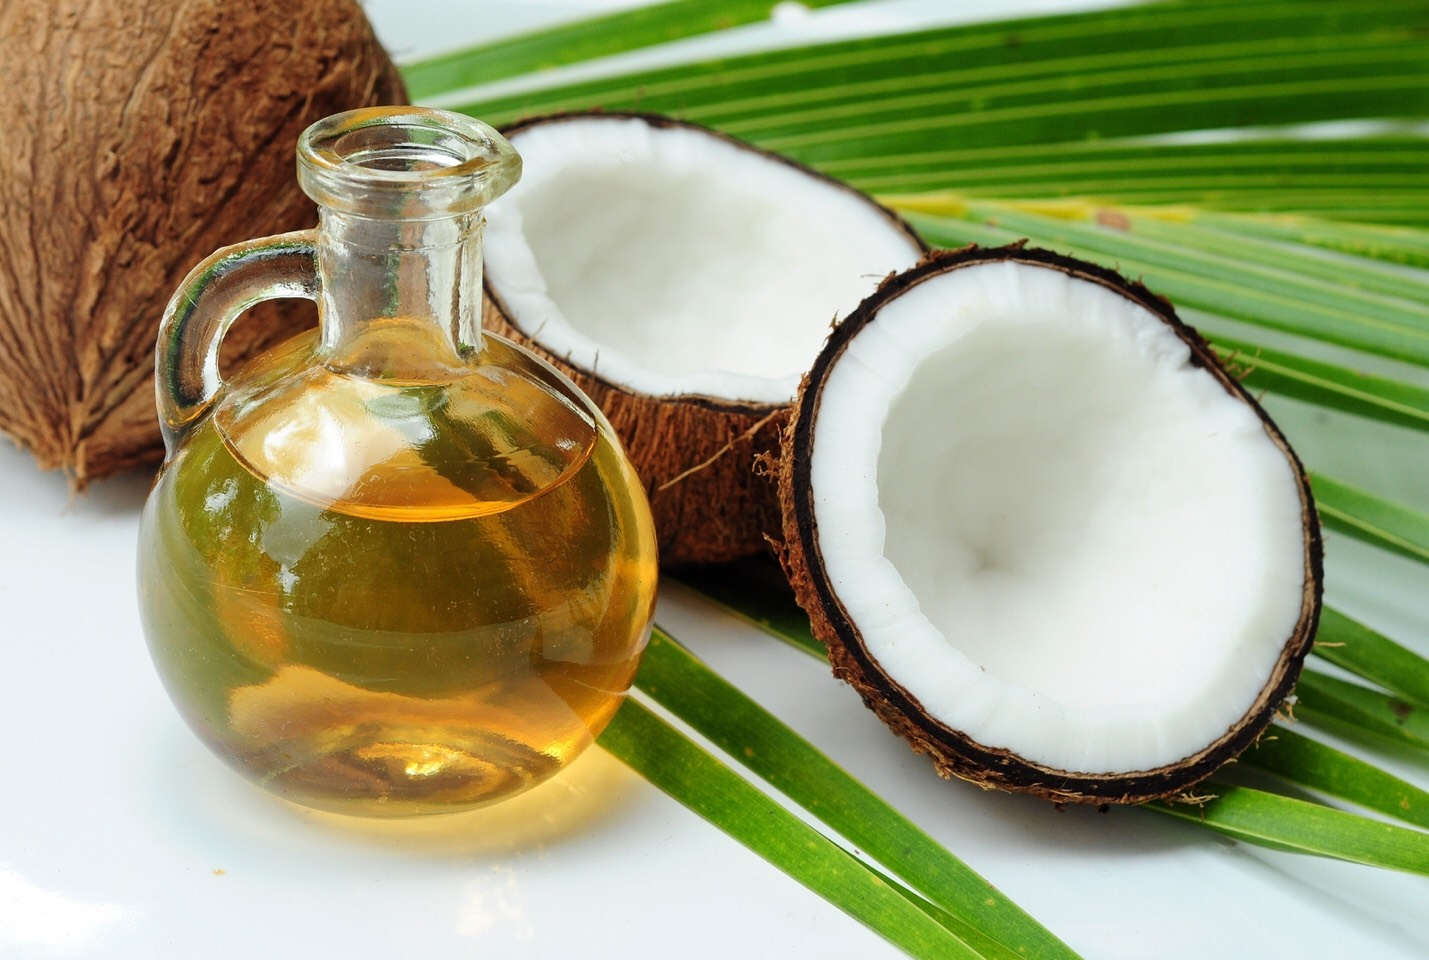 Coconut oil is helpful in reducing scars